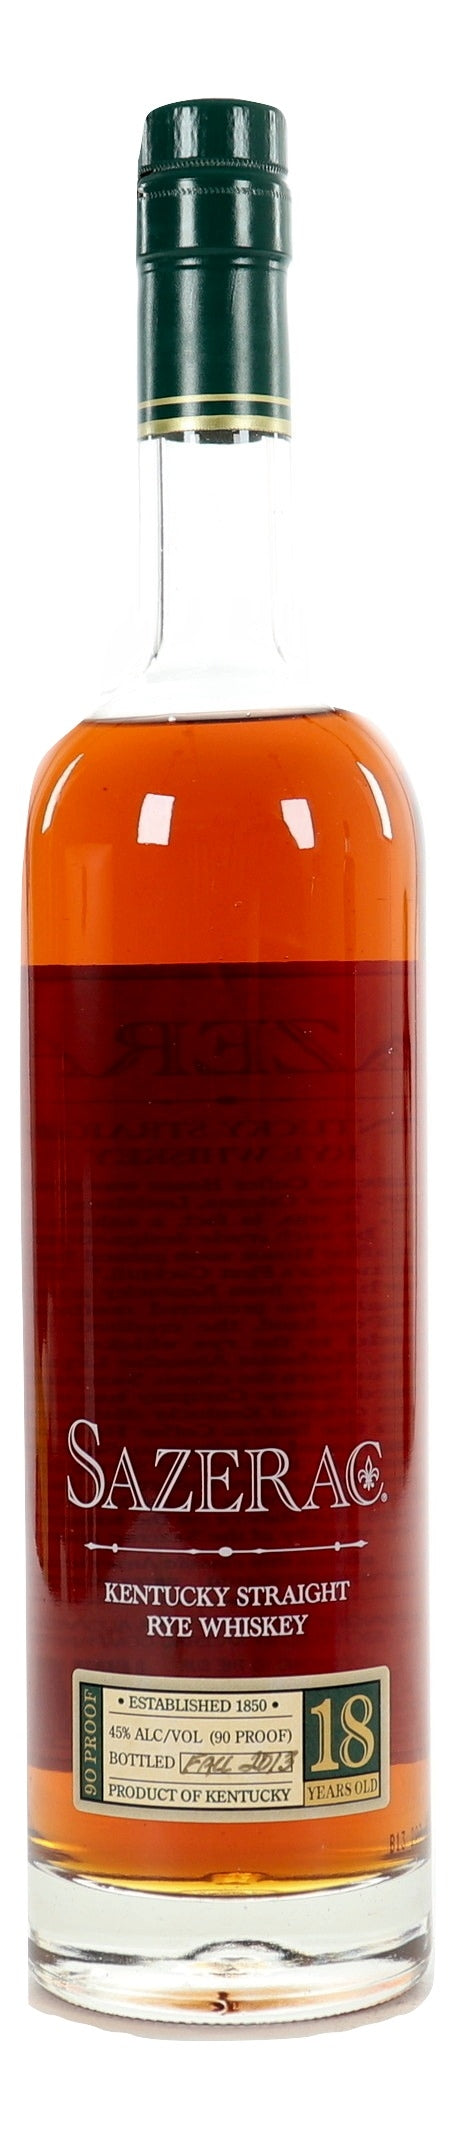 Sazerac 18 Year Old Rye 2013 For Sale - NativeSpiritsOnline